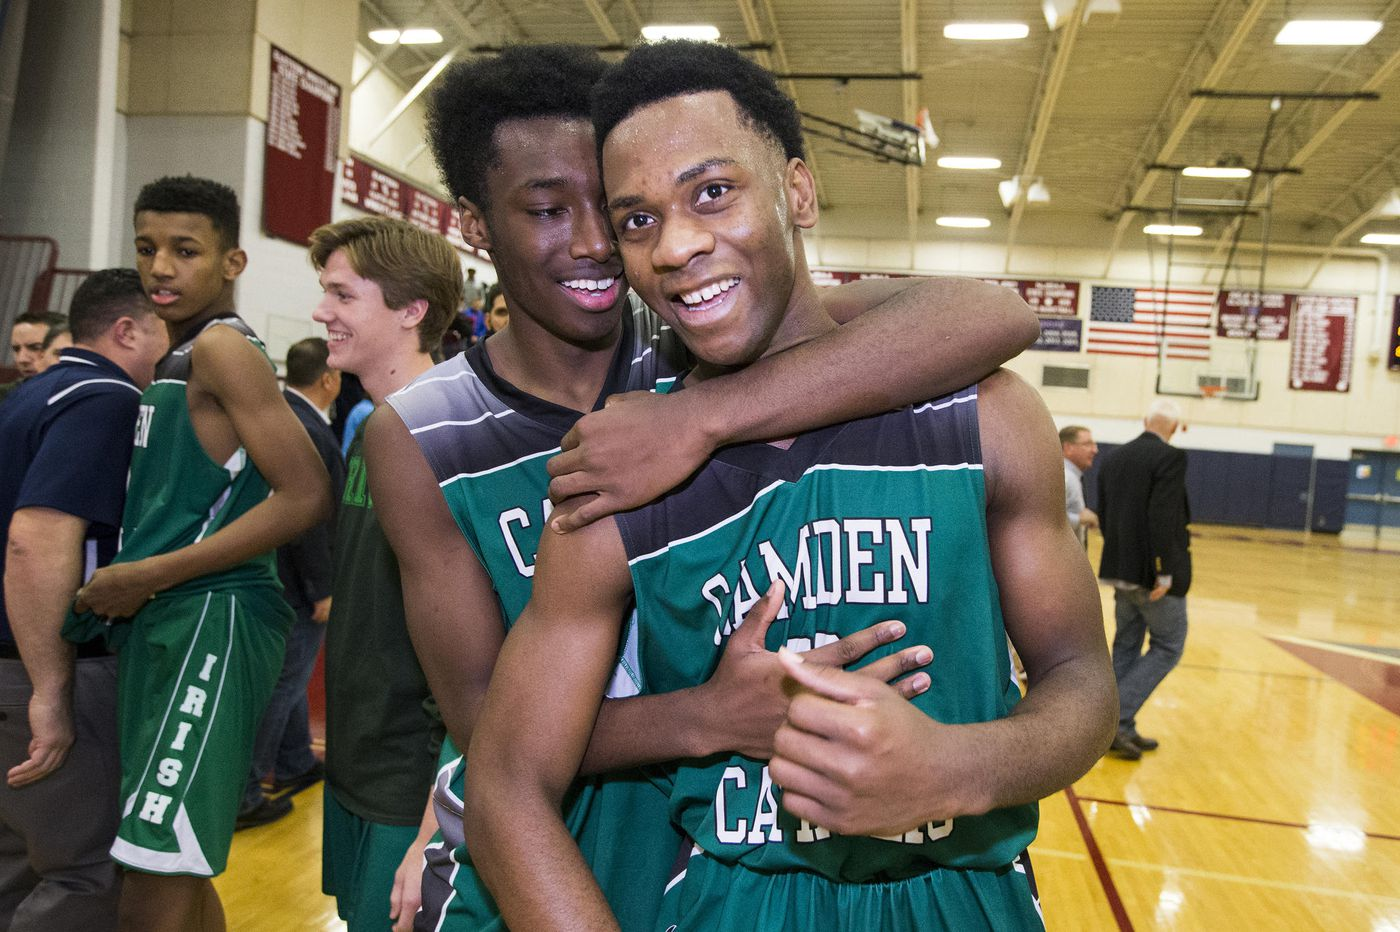 Camden Catholic's Baba Ajike, Uche Okafor to take court together for last time